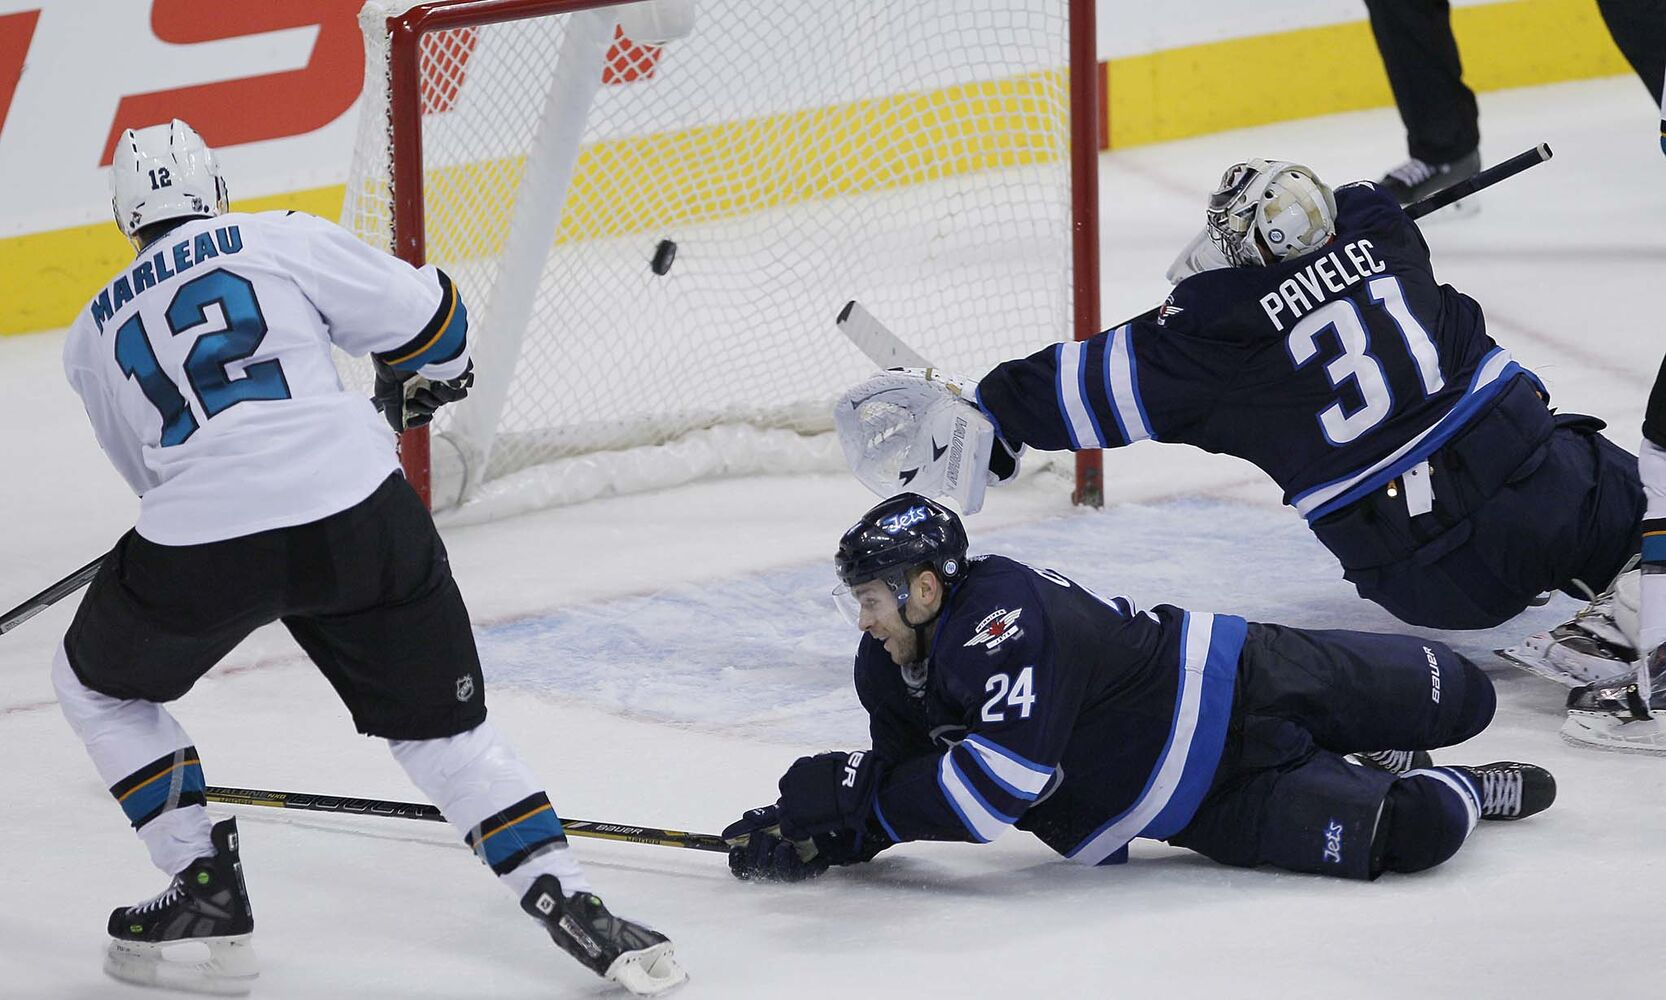 San Jose Sharks' Patrick Marleau (12) scores on Winnipeg Jets' goaltender Ondrej Pavelec (31) and Grant Clitsome (24) in NHL overtime action. (JOHN WOODS / WINNIPEG FREE PRESS)